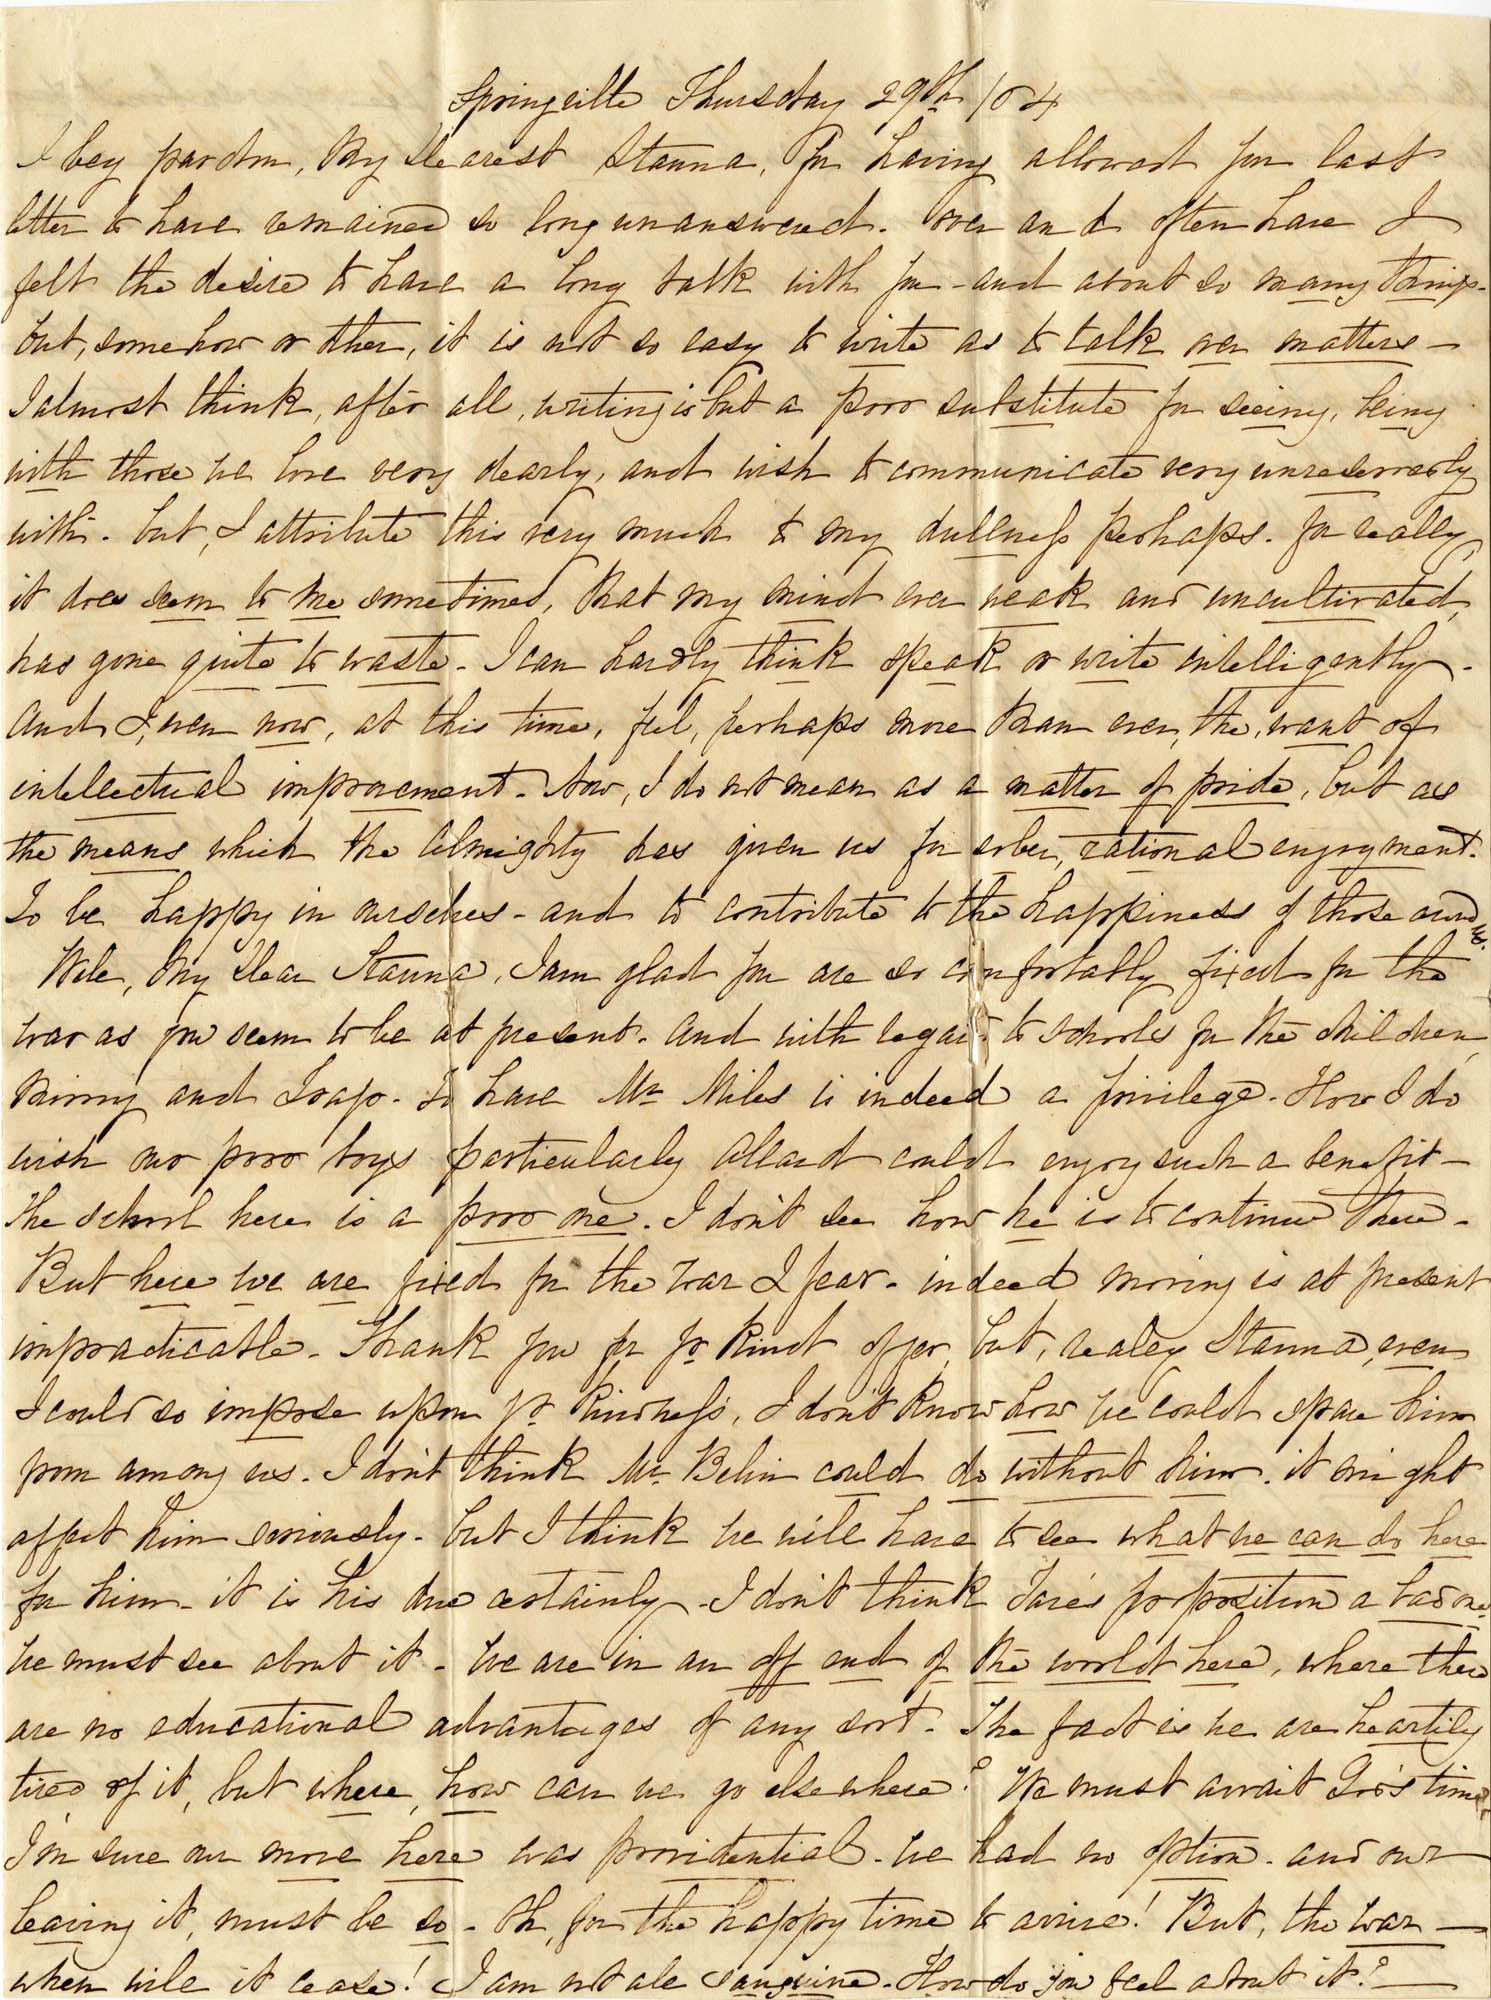 007. Virginia to Stanna -- [Unknown month] 29, 1864